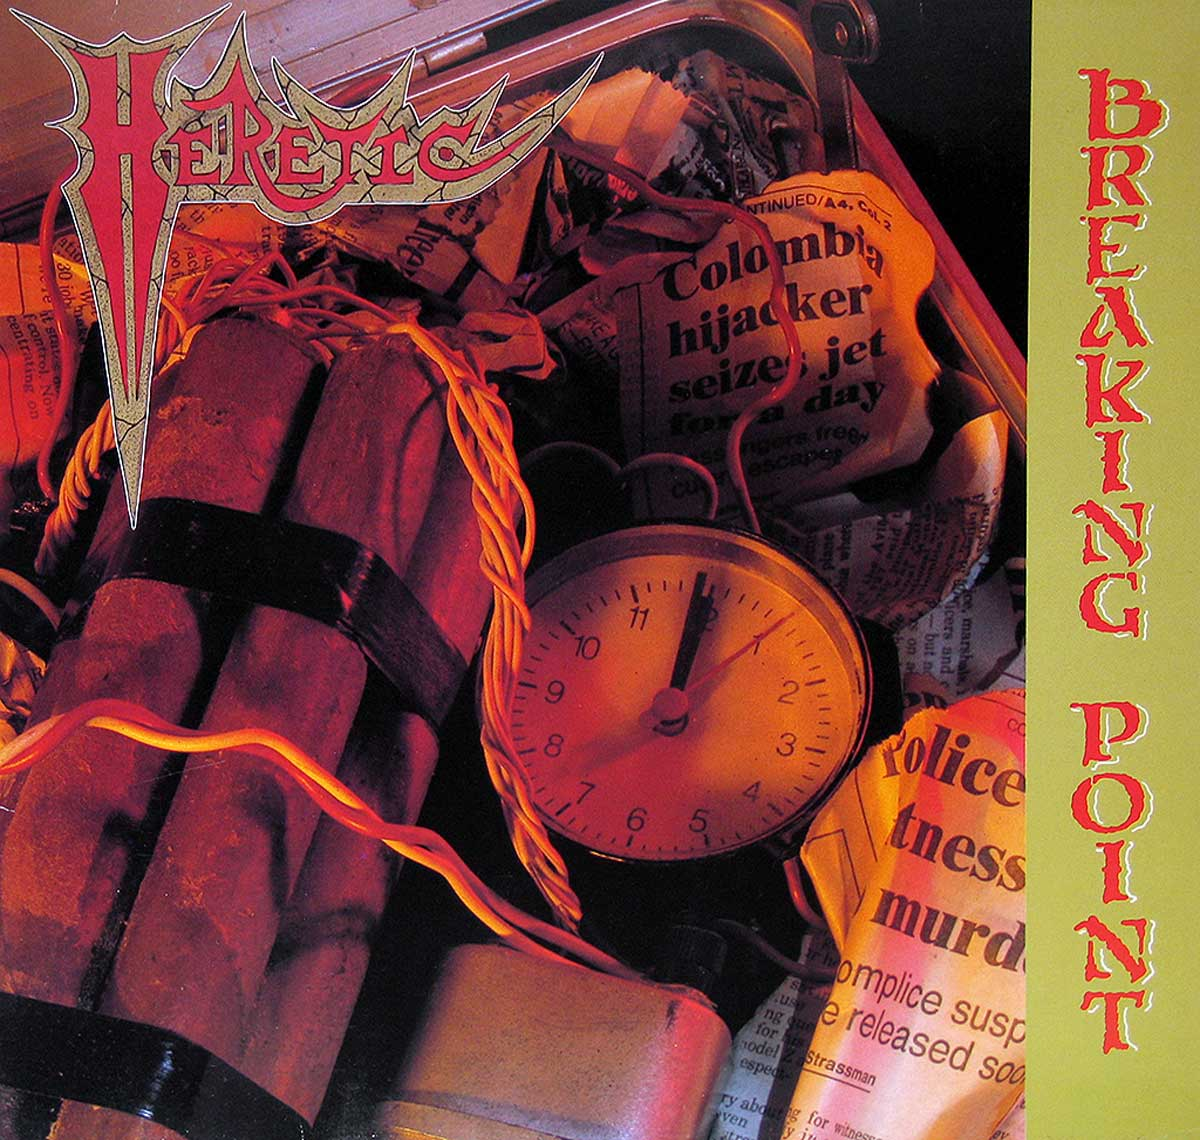 large album front cover photo of: HERETIC BREAKING POINT